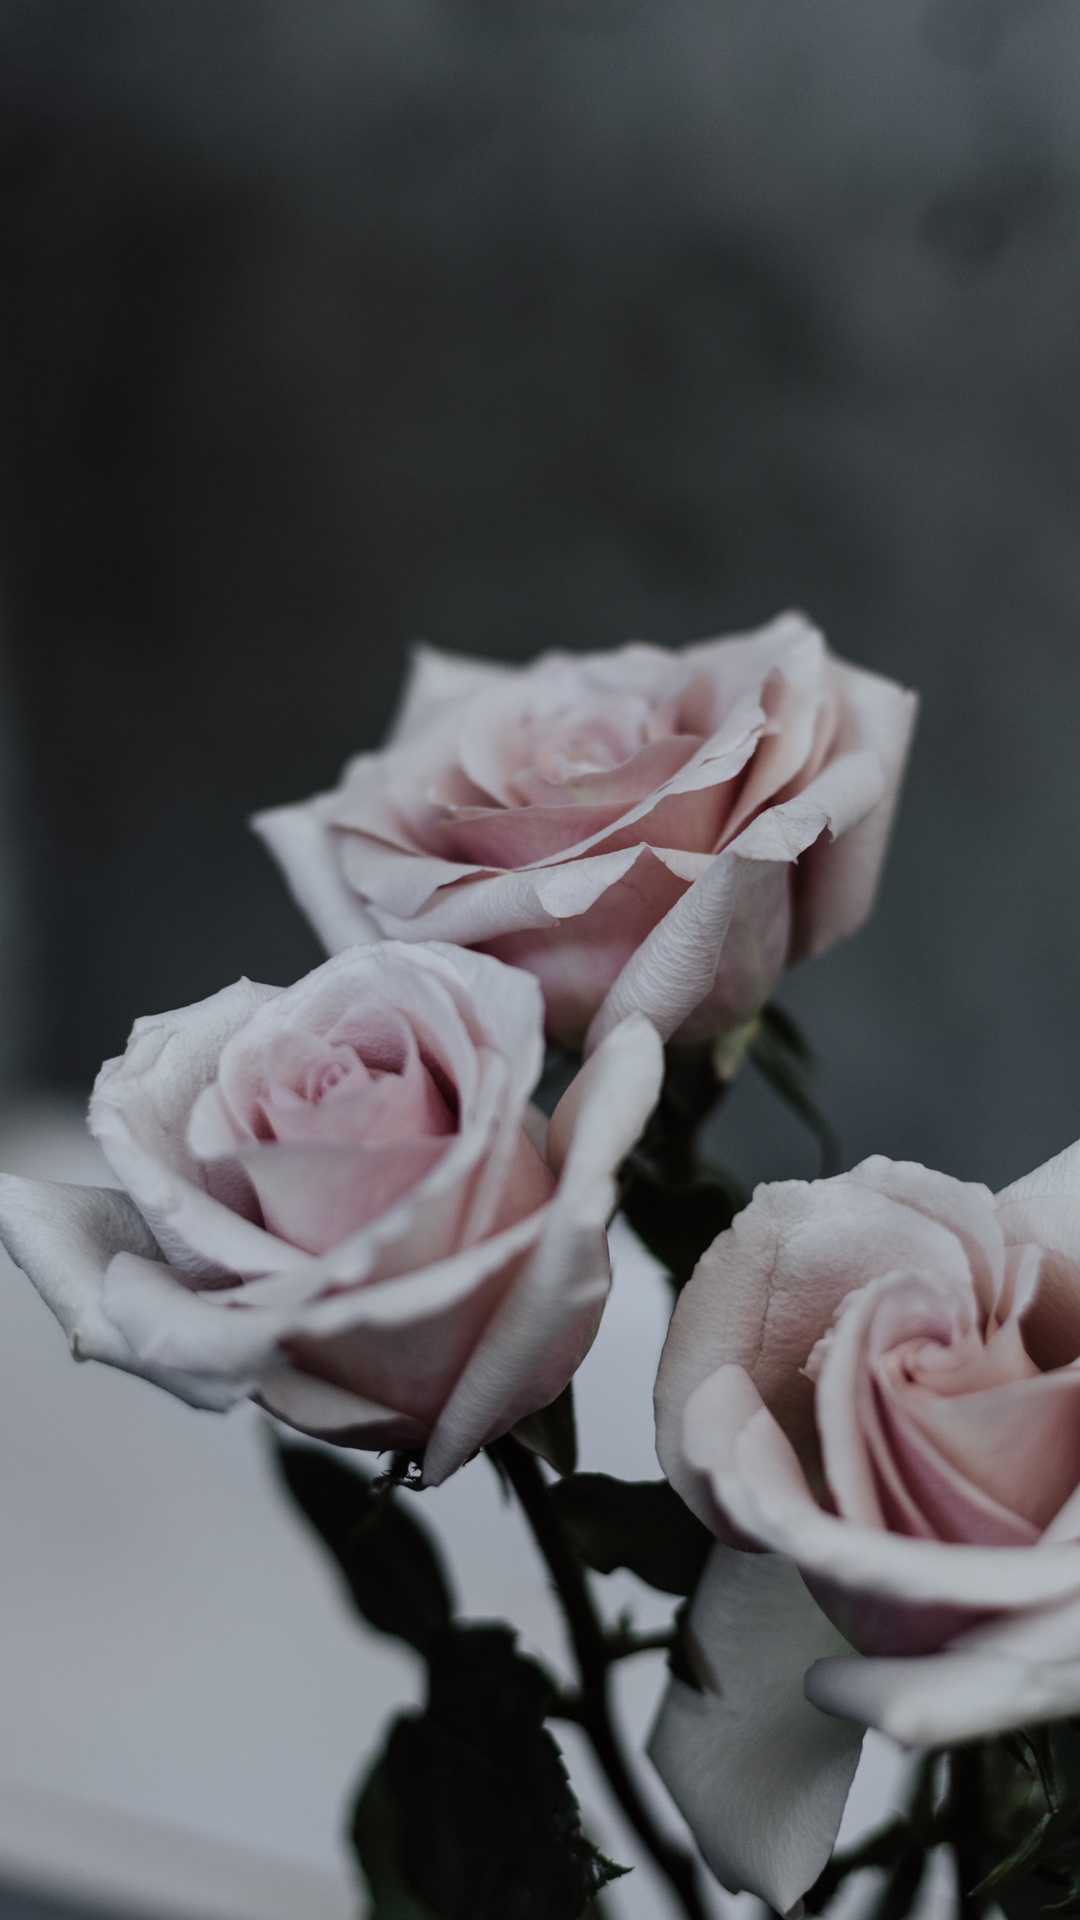 pink rose aesthetic background